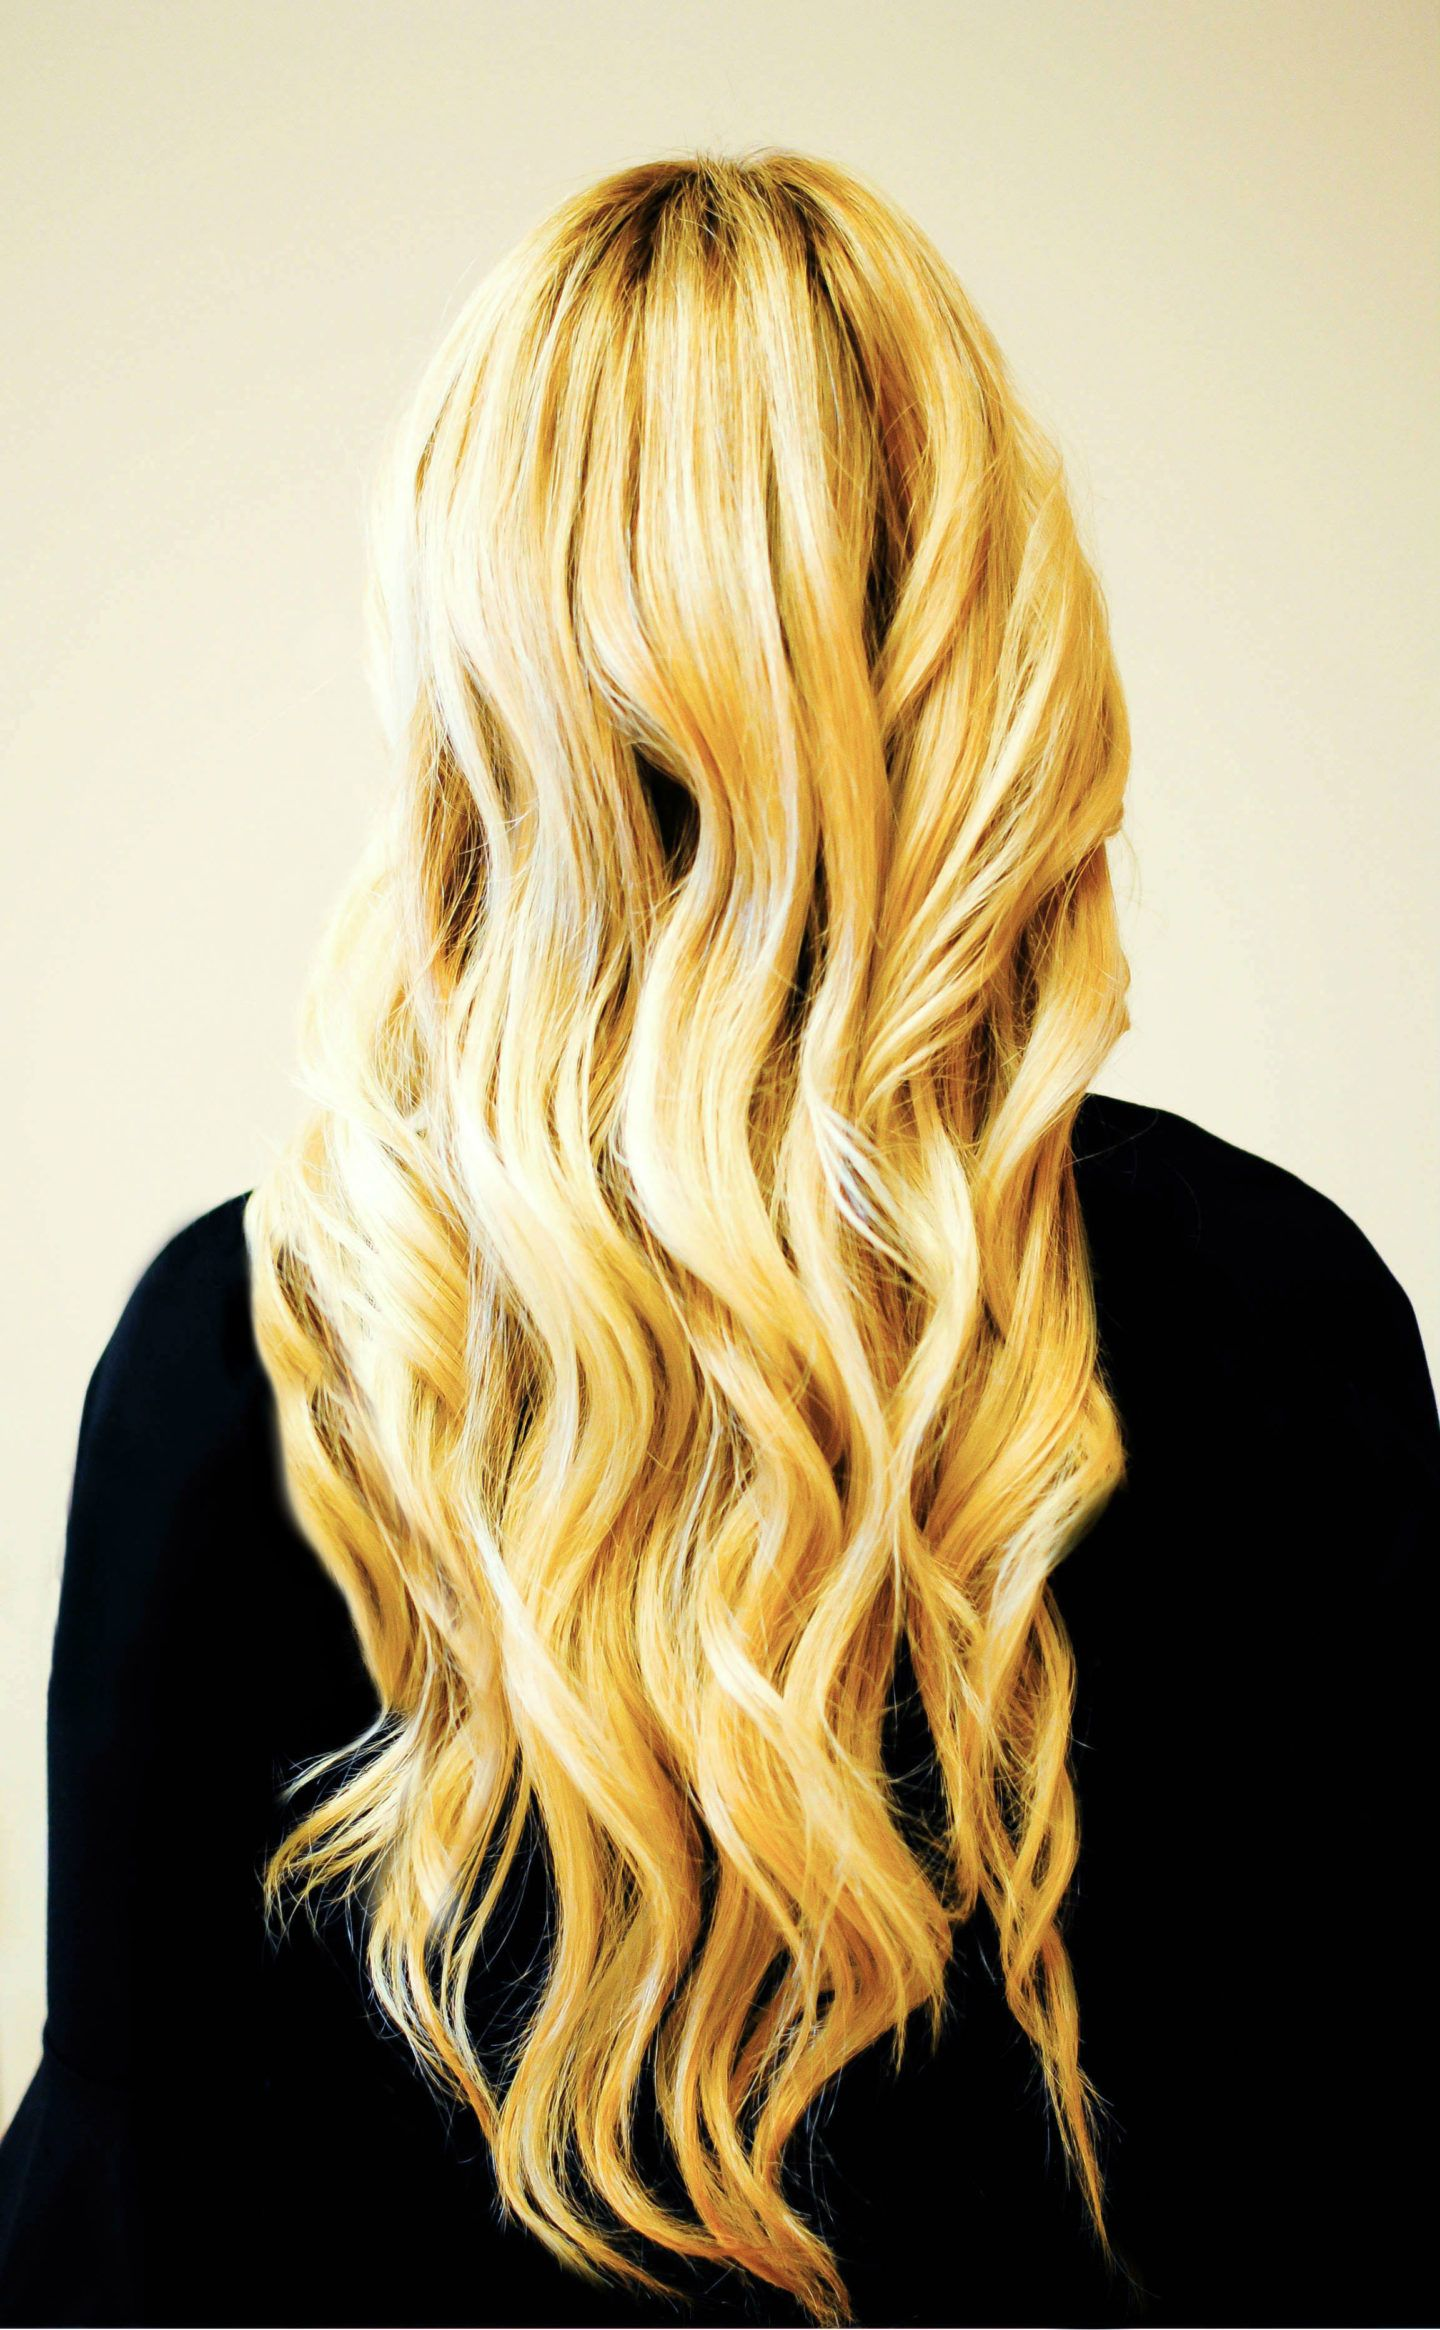 Hair Cuttery My Redken Gloss It Up Experience What Would V Wear Hair Cuttery Hair Hair Styles